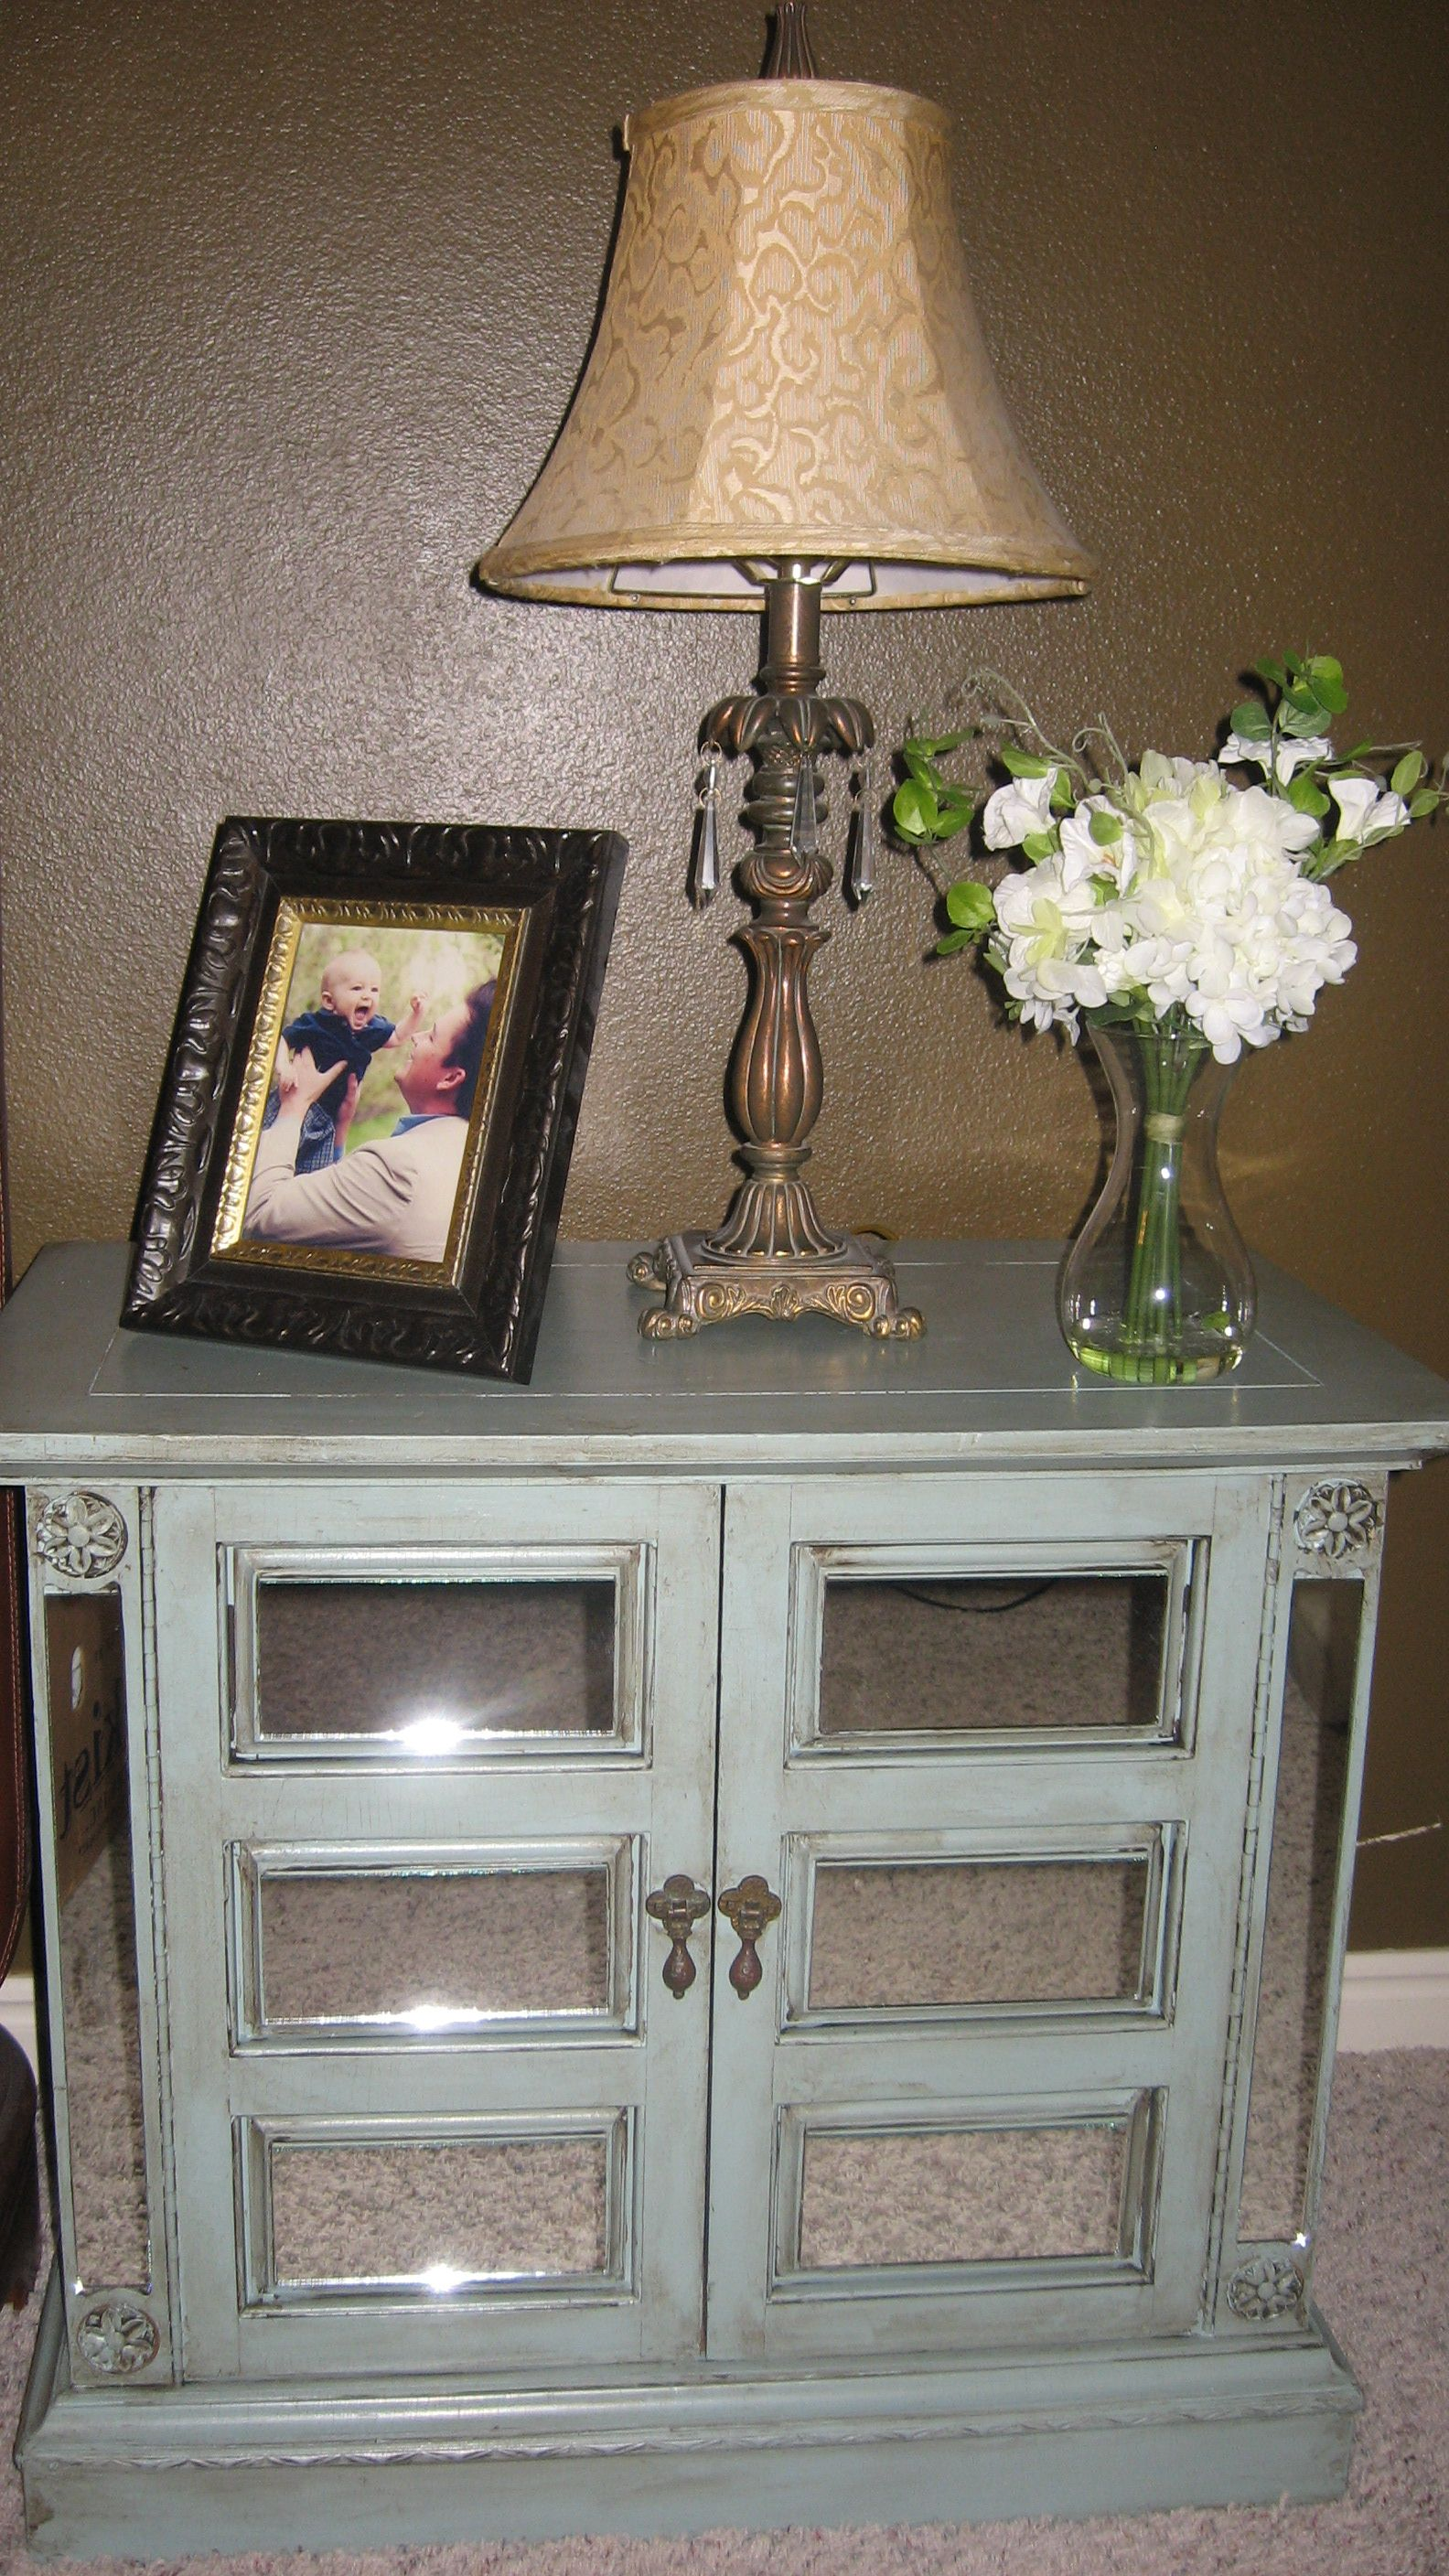 Delightful DIY Mirrored Furniture! I May Be Doing Something Like This On Saturday If I  Find Anything At The Antique Shop!